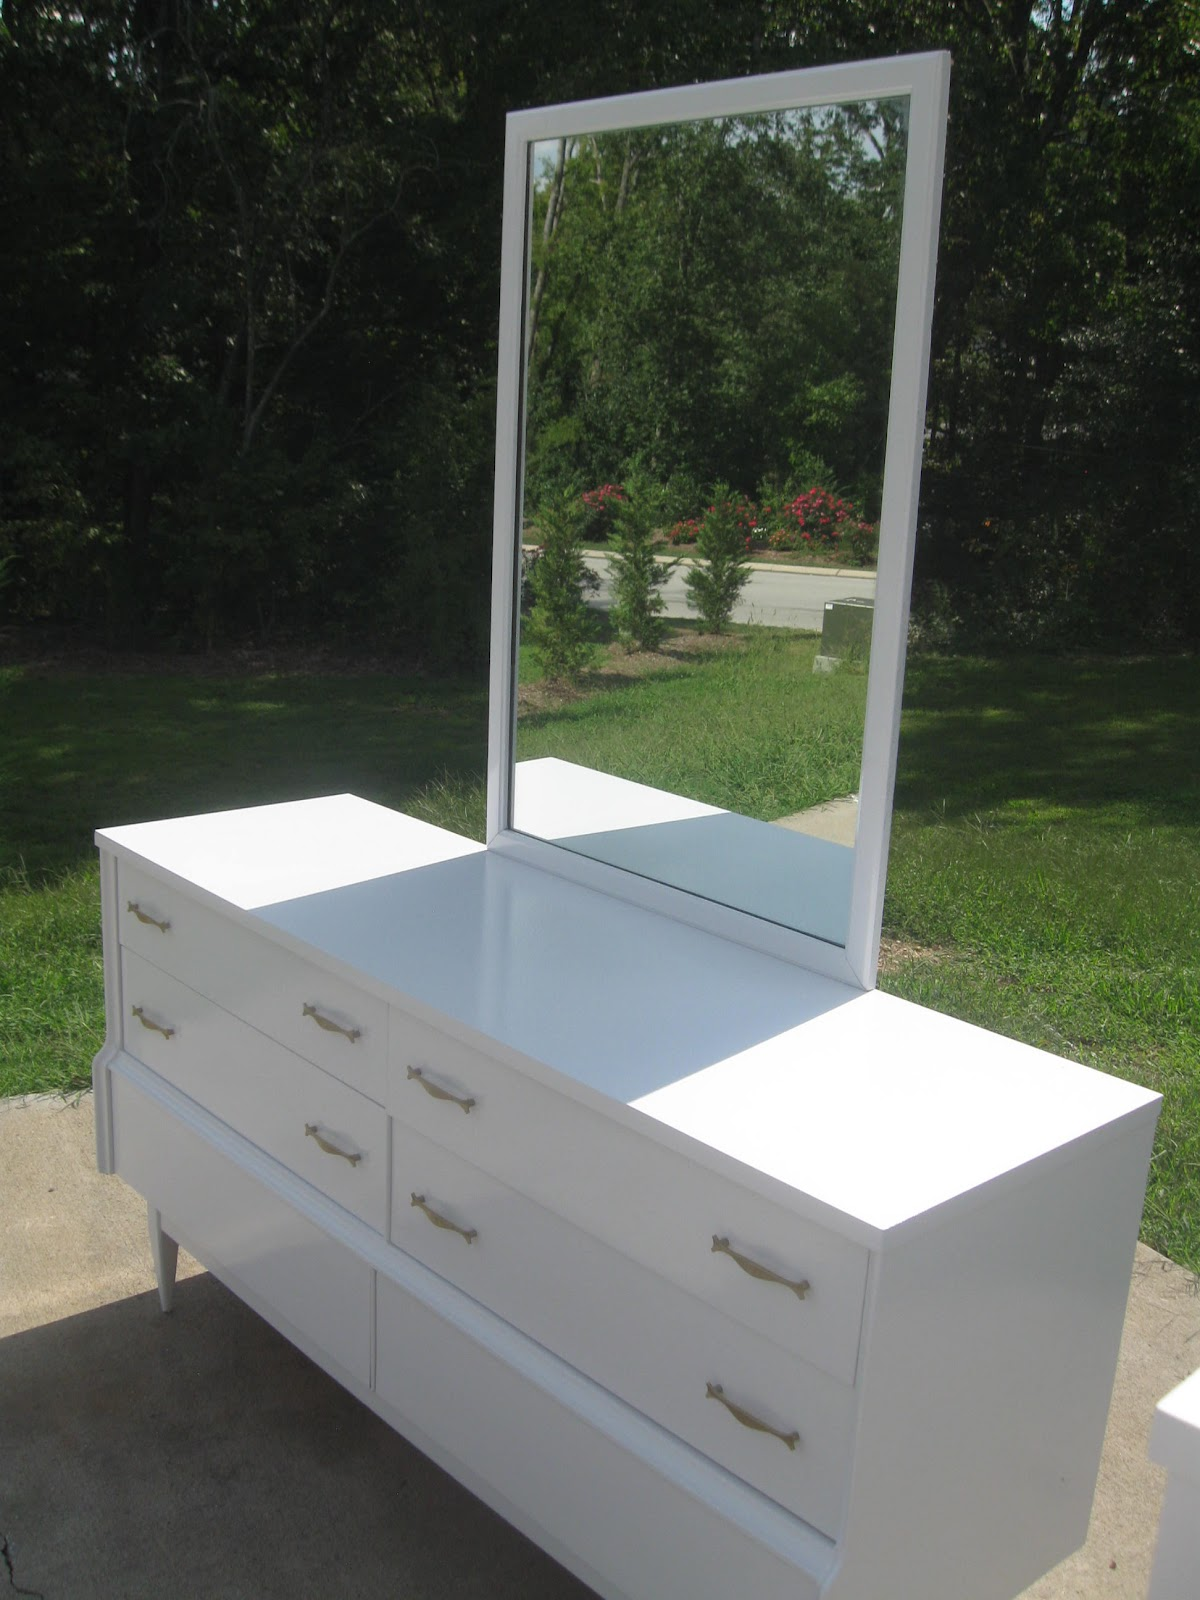 Thats Not JunkRefurbished Recycled Furniture Mid Century - Modern retro bedroom